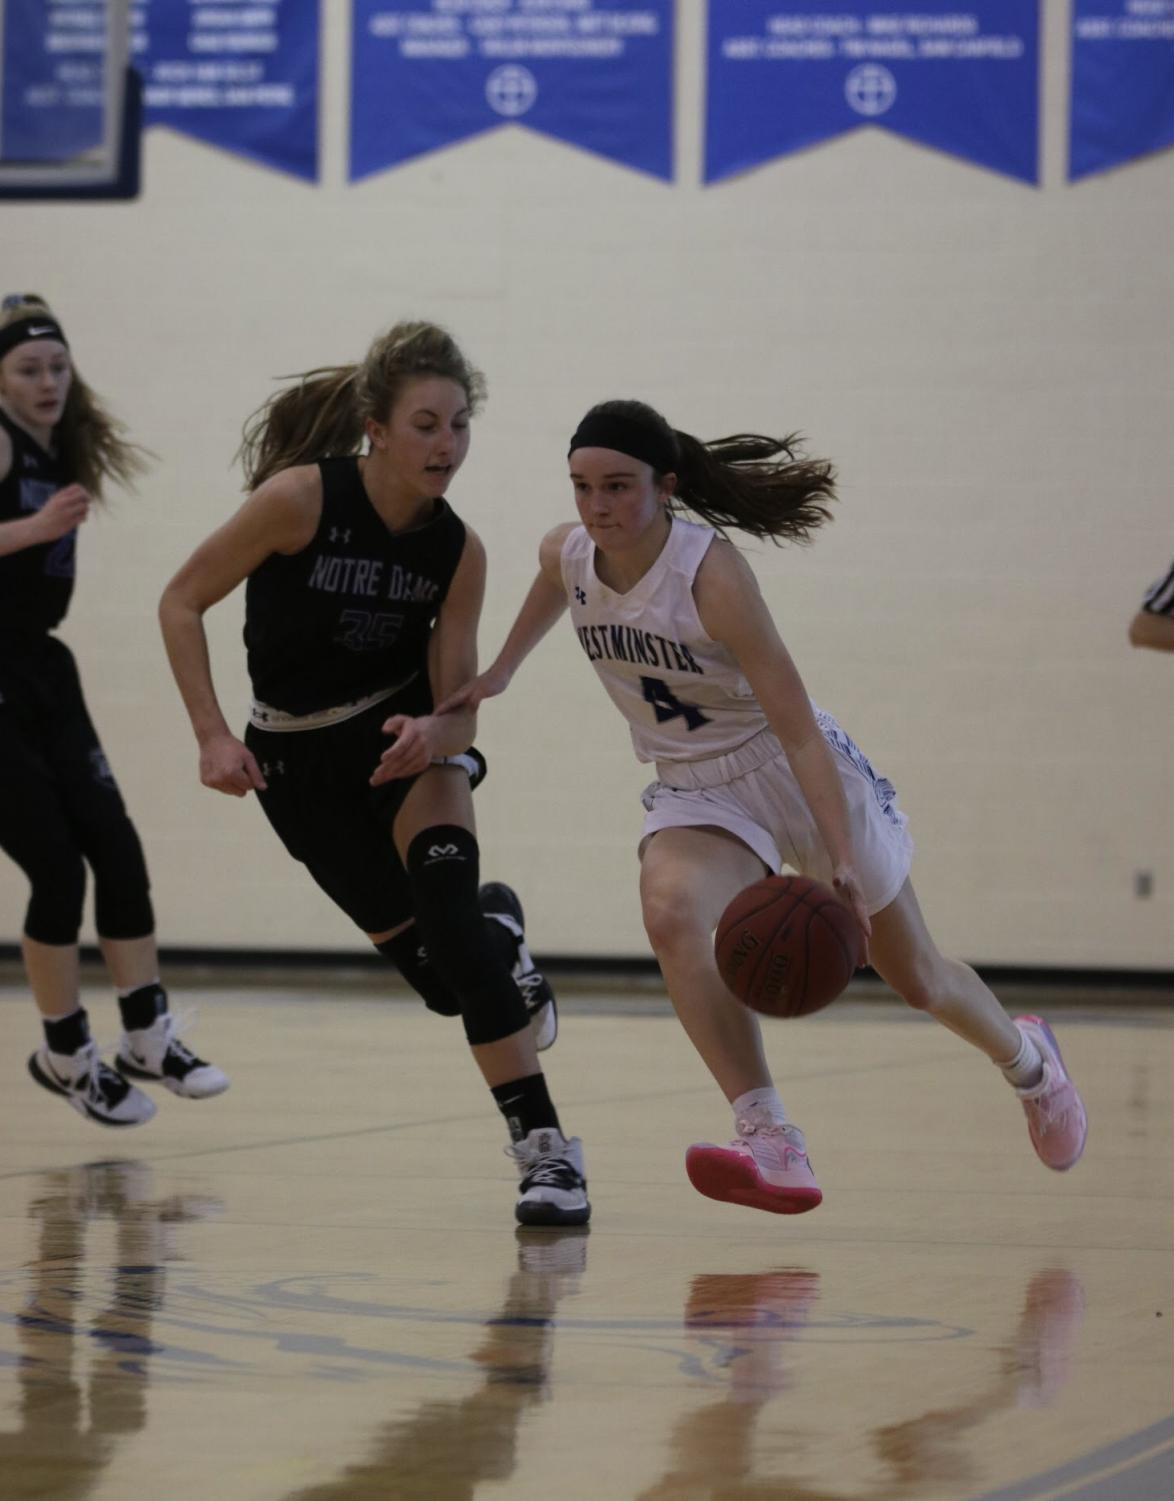 Sophomore Brooke Highmark pushes the ball down the floor against the press.